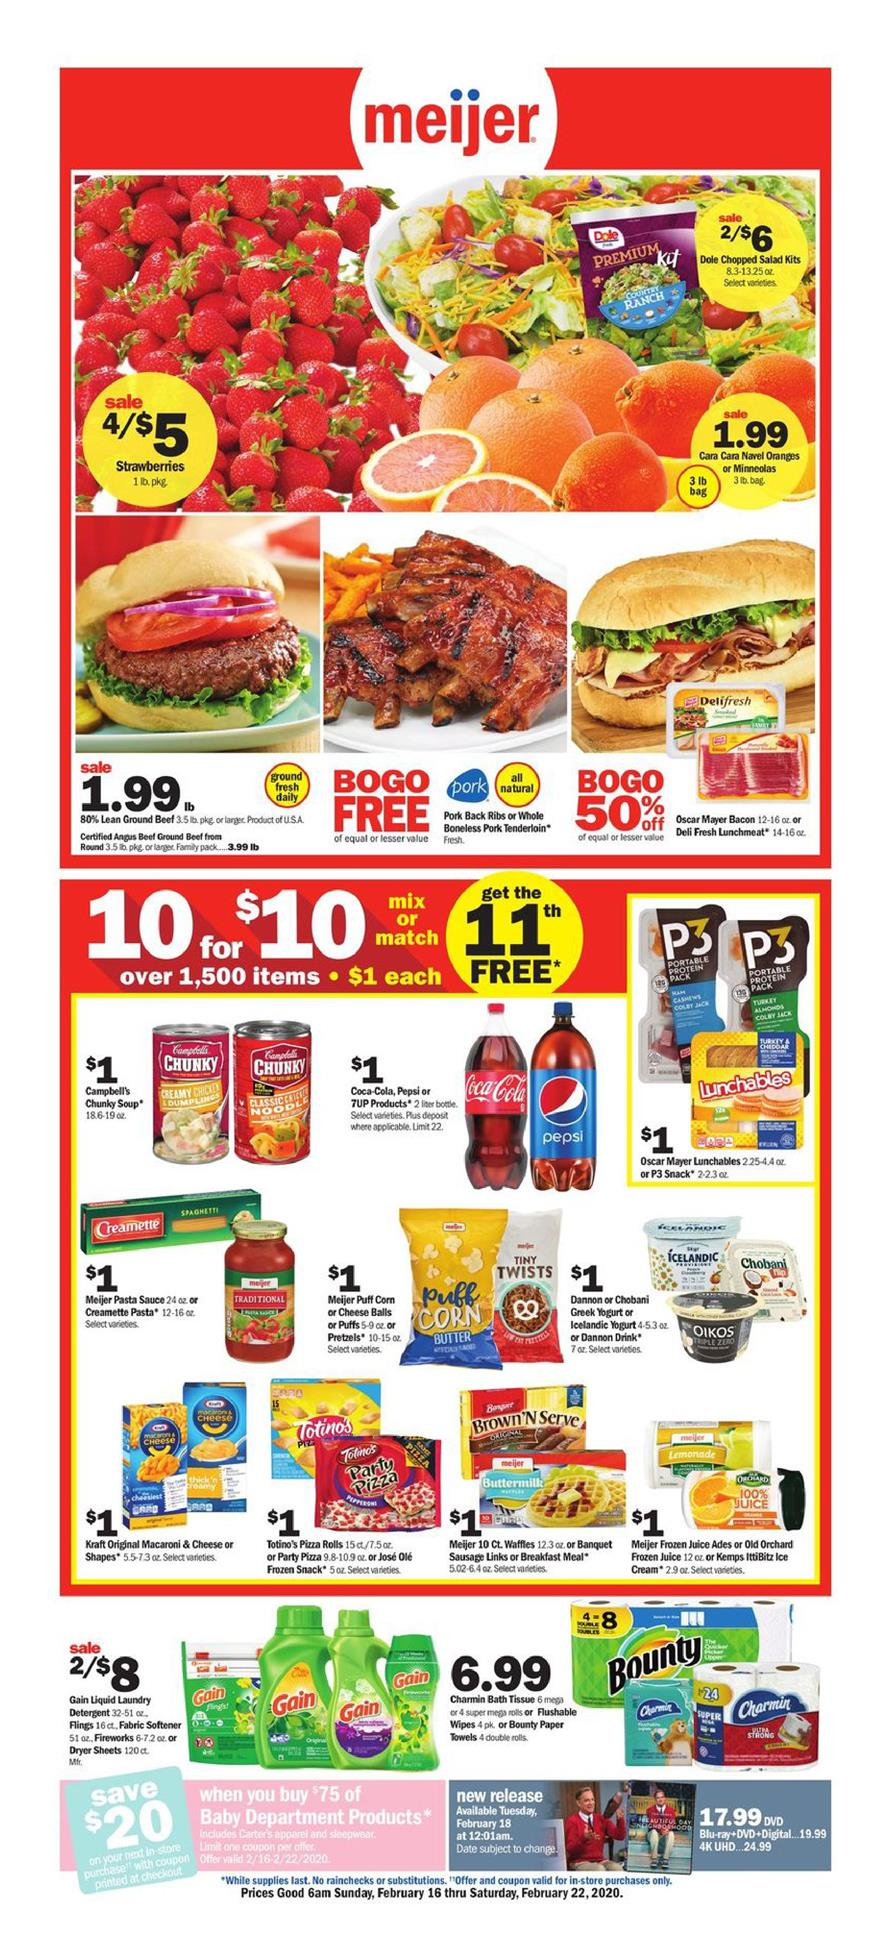 meijer weekly ad feb 16 2020